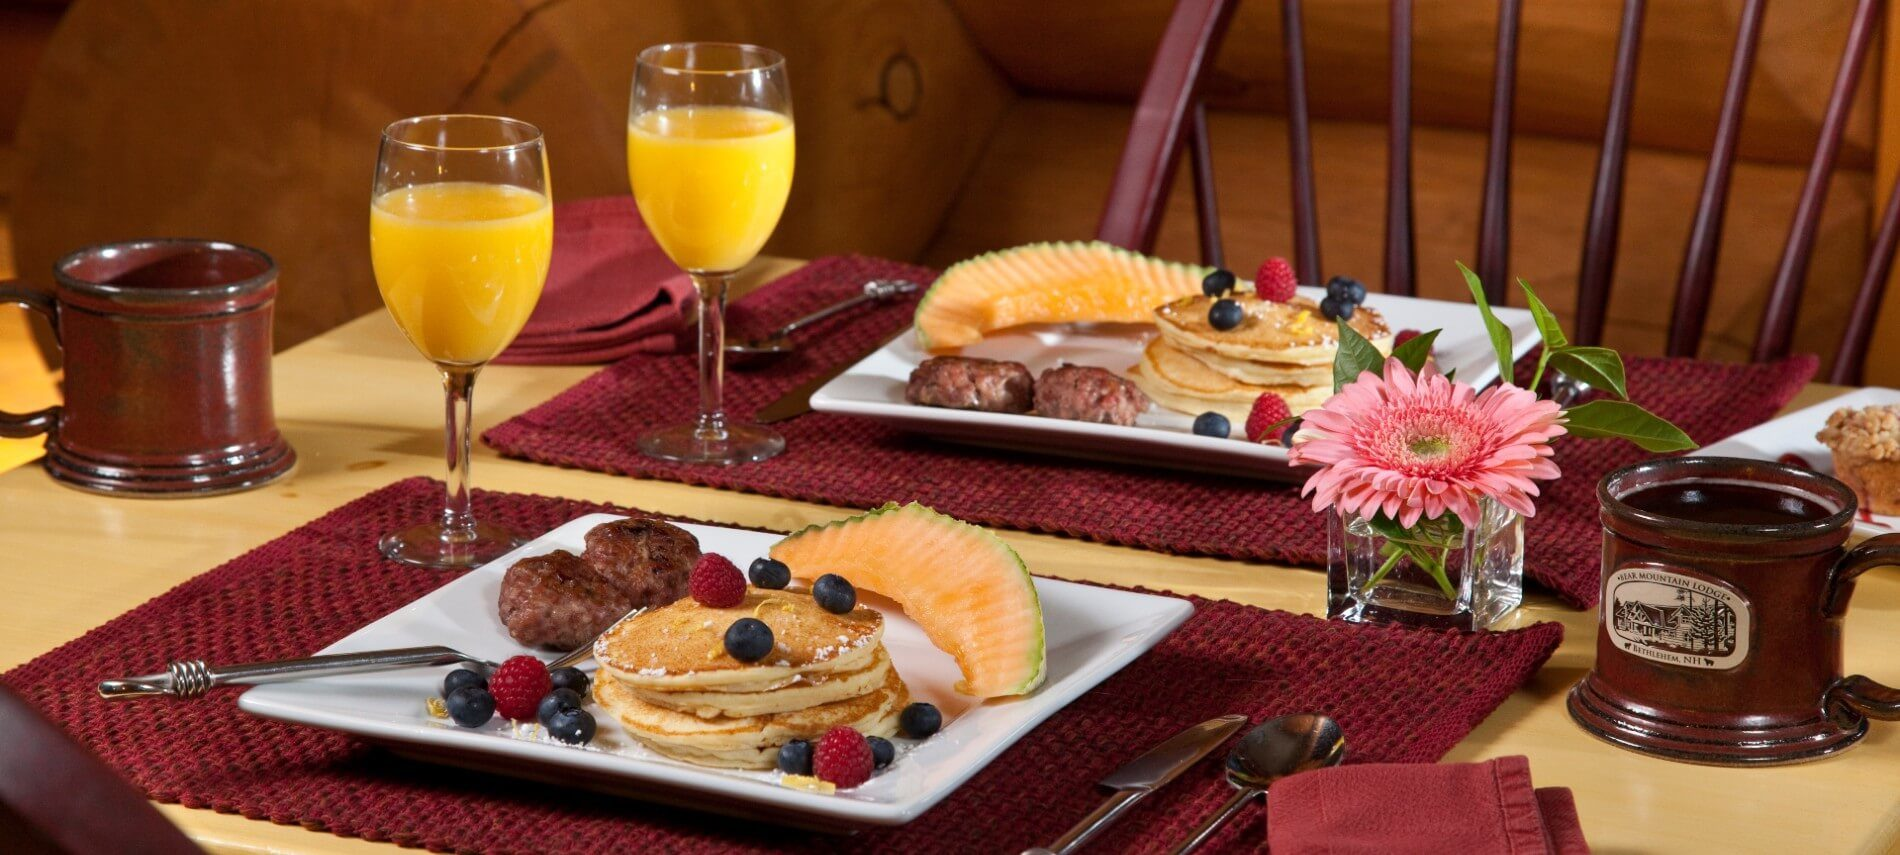 Breakfast table set for two with white plates holding pancakes, fruit and sausage